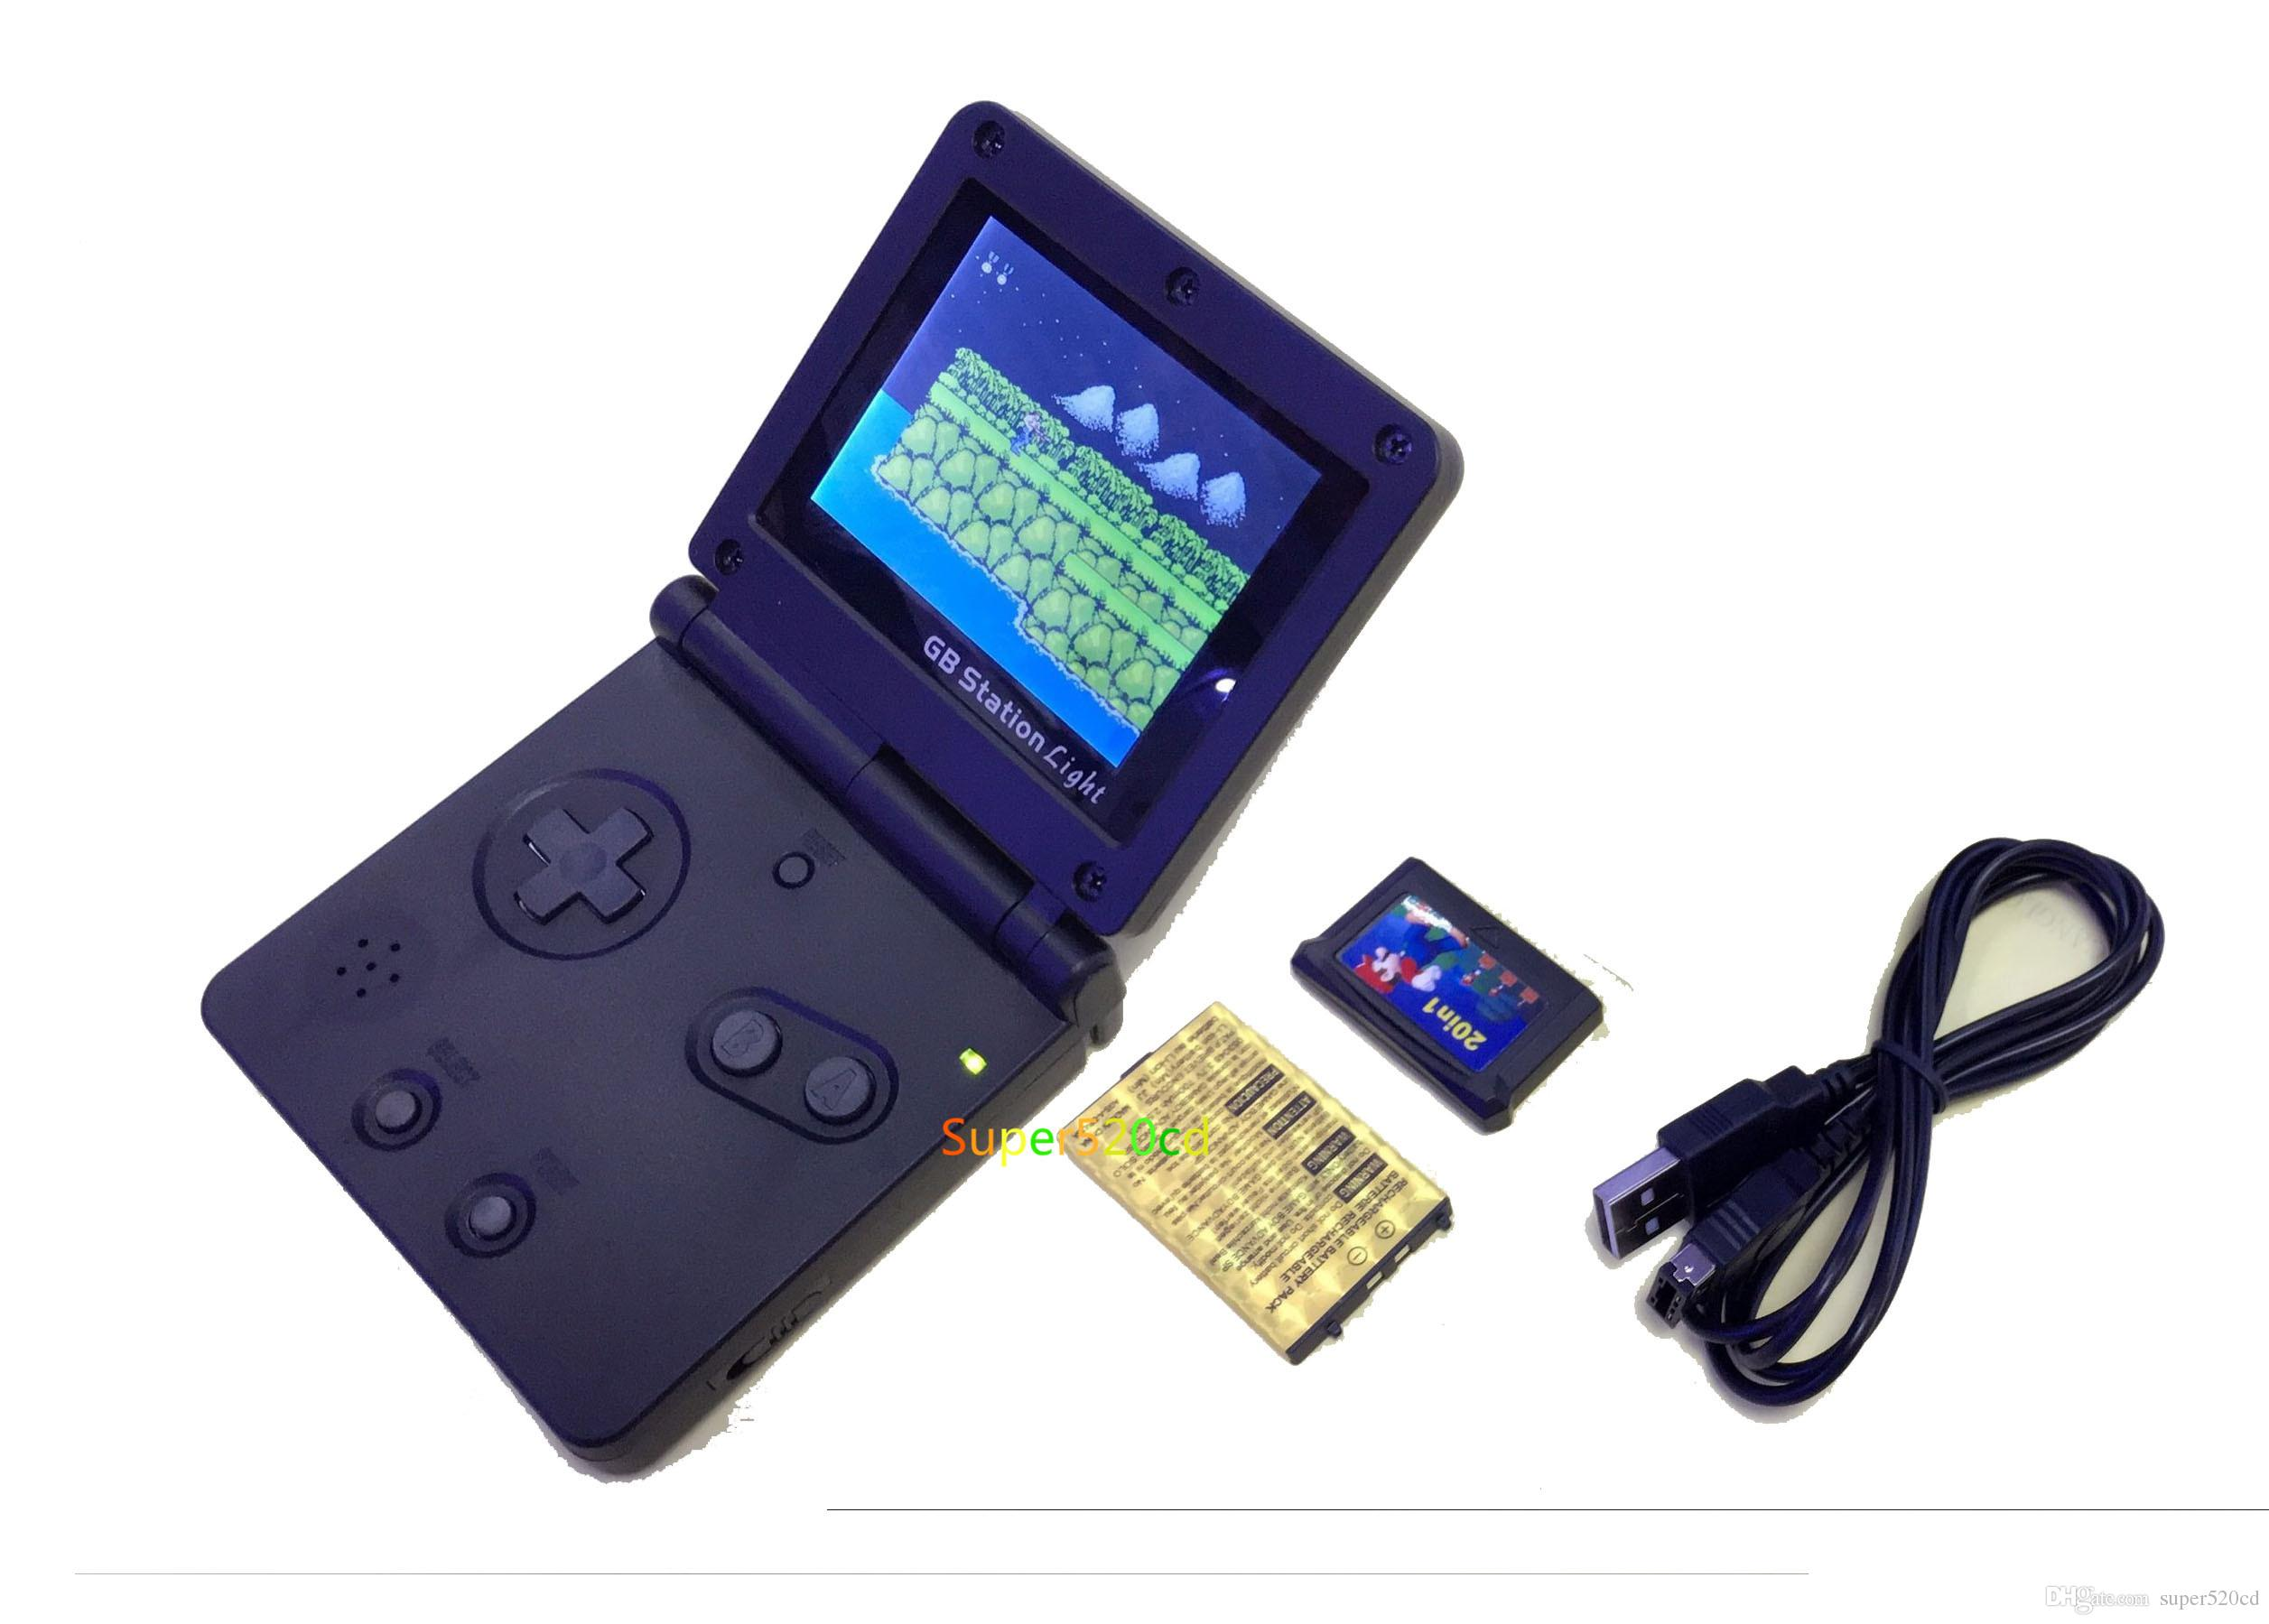 Gb Station Light Boy Sp Pvp Handheld Game Player 8 Bit Game Console